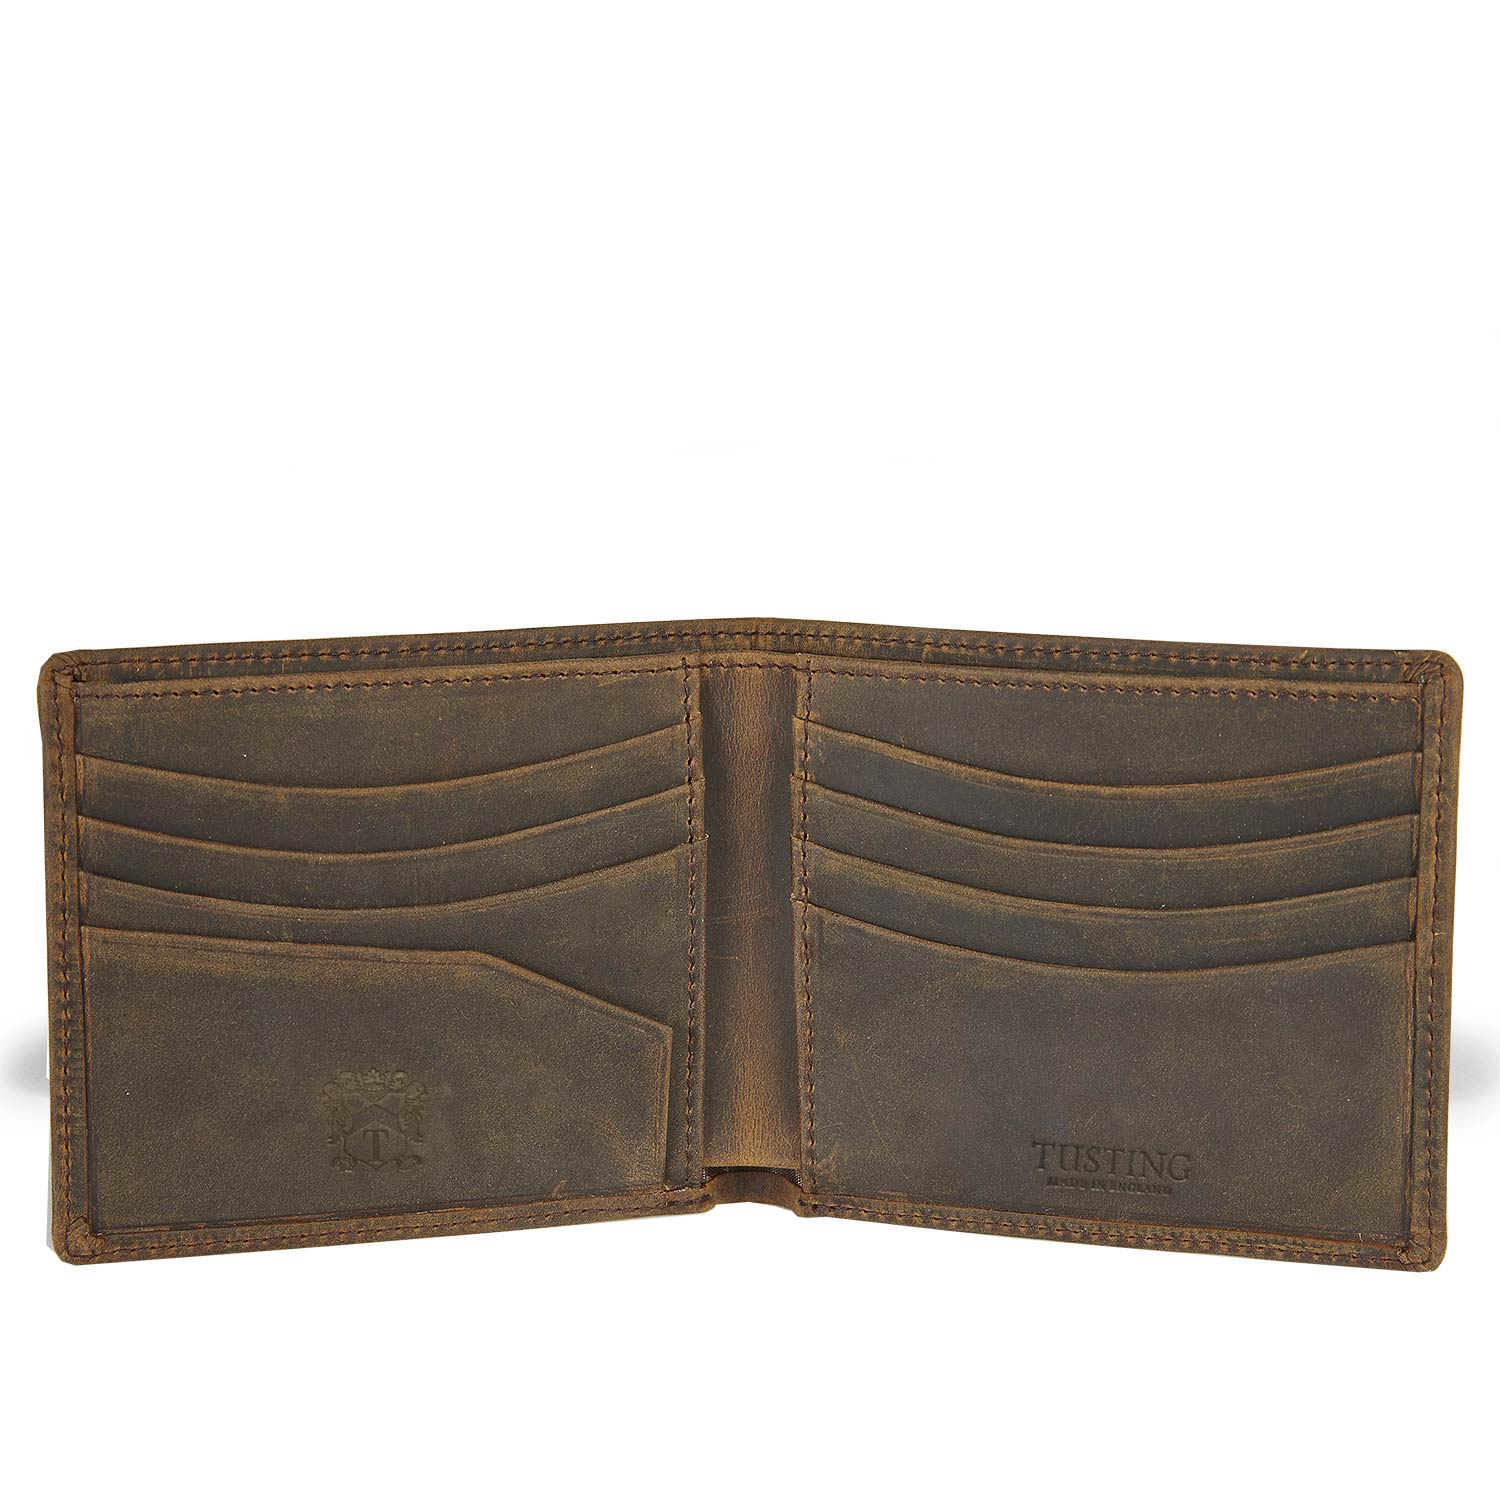 Tusting Aztec Crazyhorse Leather Wallet